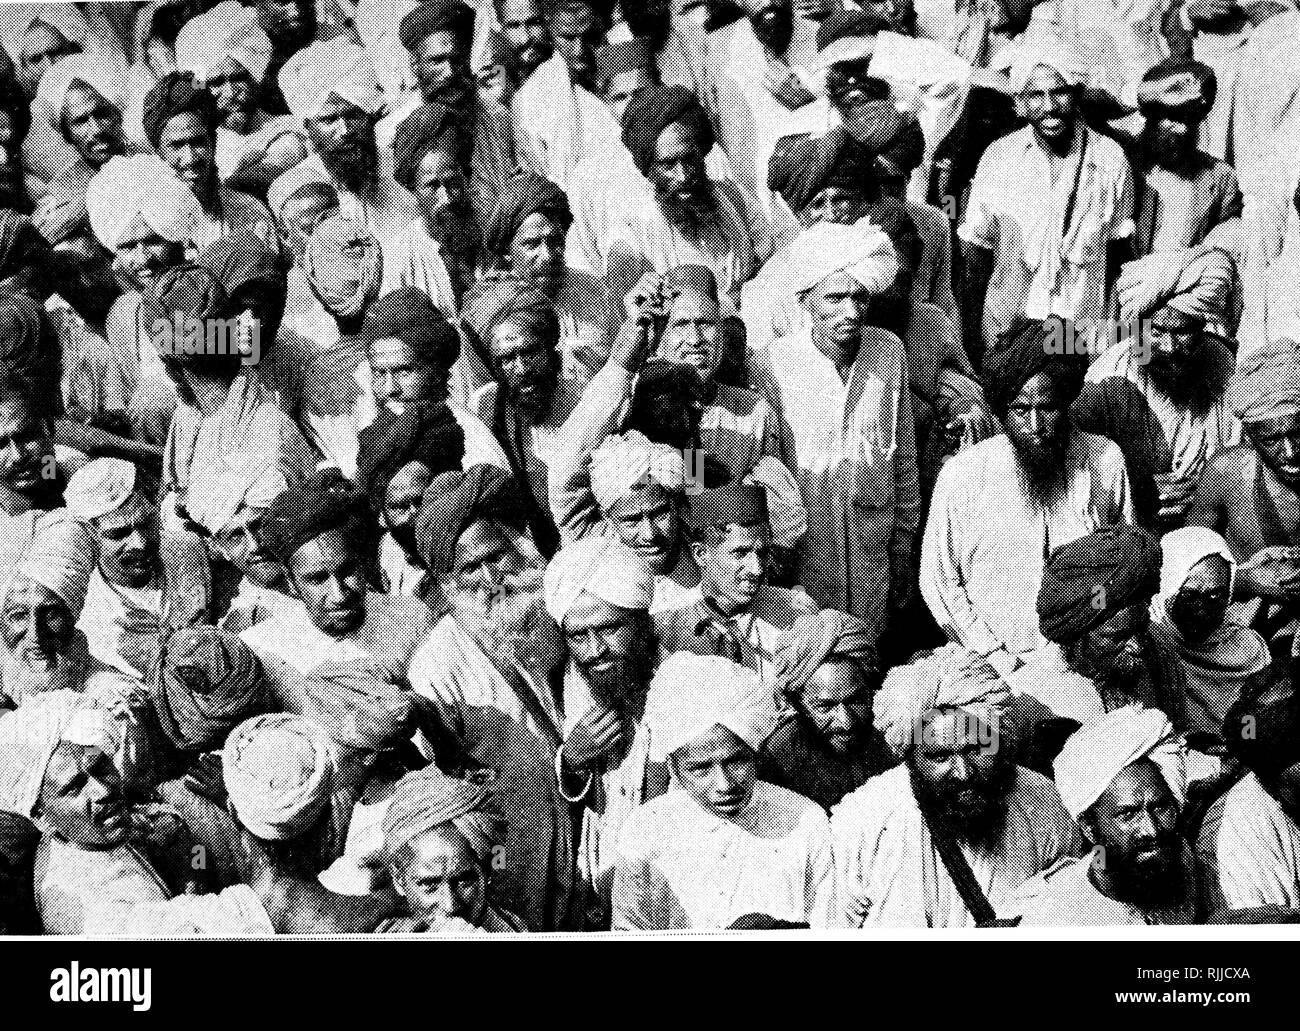 A photograph taken during the Gandhi movement in India. People crowd the streets of Amritsar to watch a demonstration of the disciples of Gandhi. Dated 20th century - Stock Image